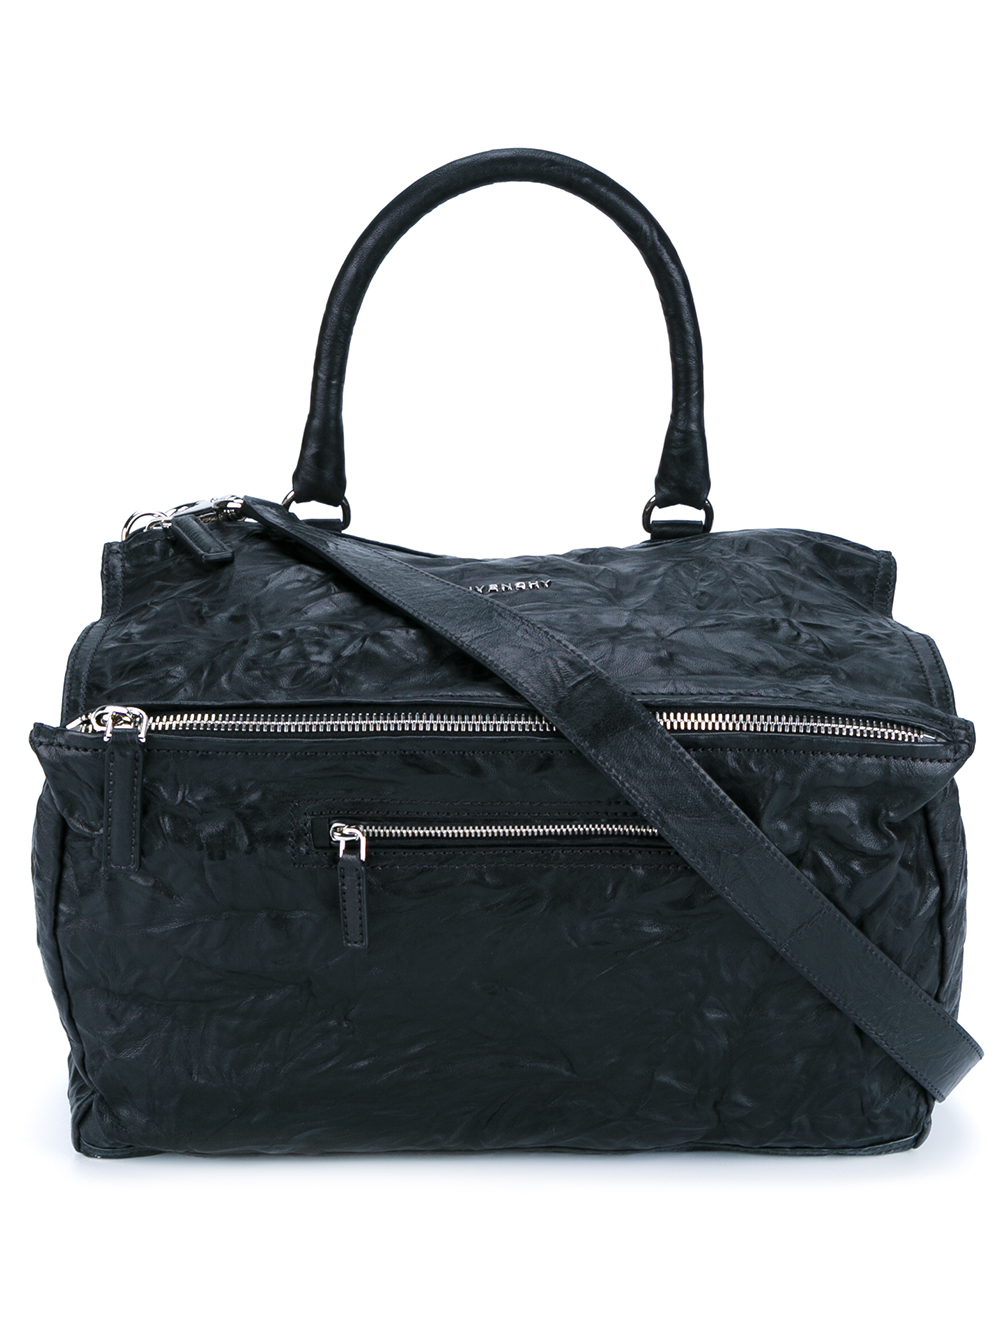 givenchy large leather pandora bag in black lyst